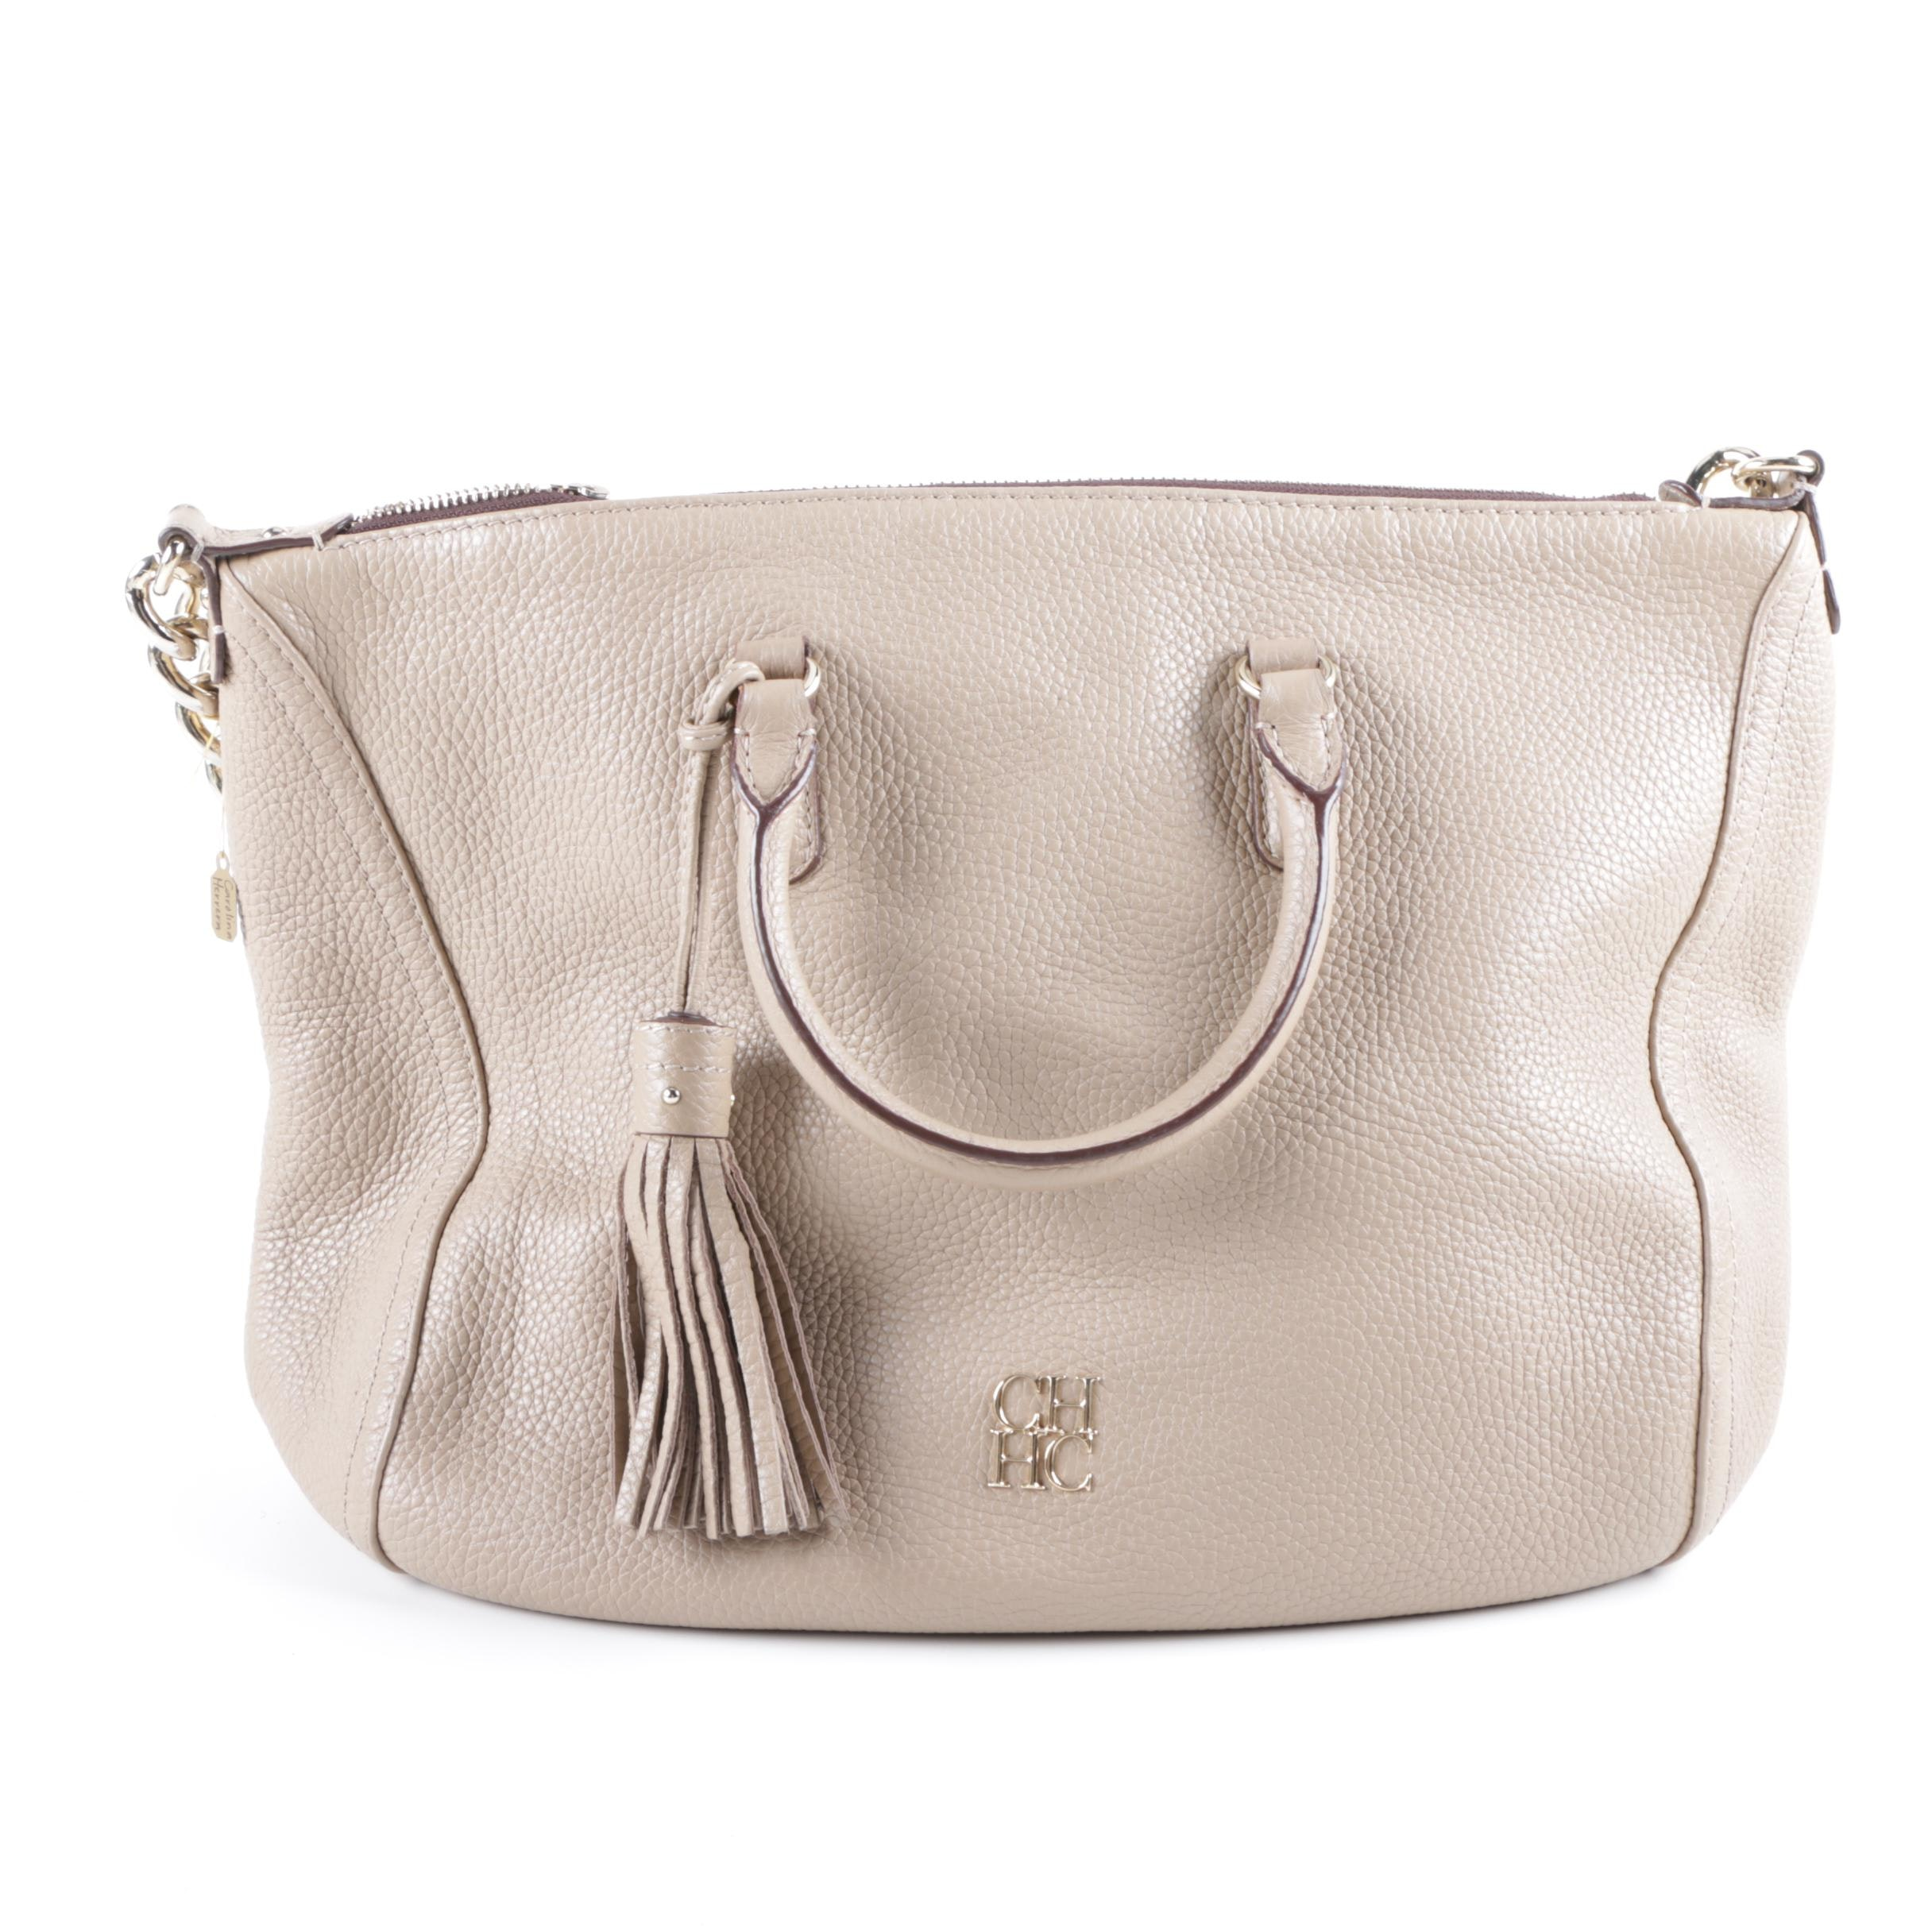 Carolina Herrera Taupe Pebbled Leather Handbag